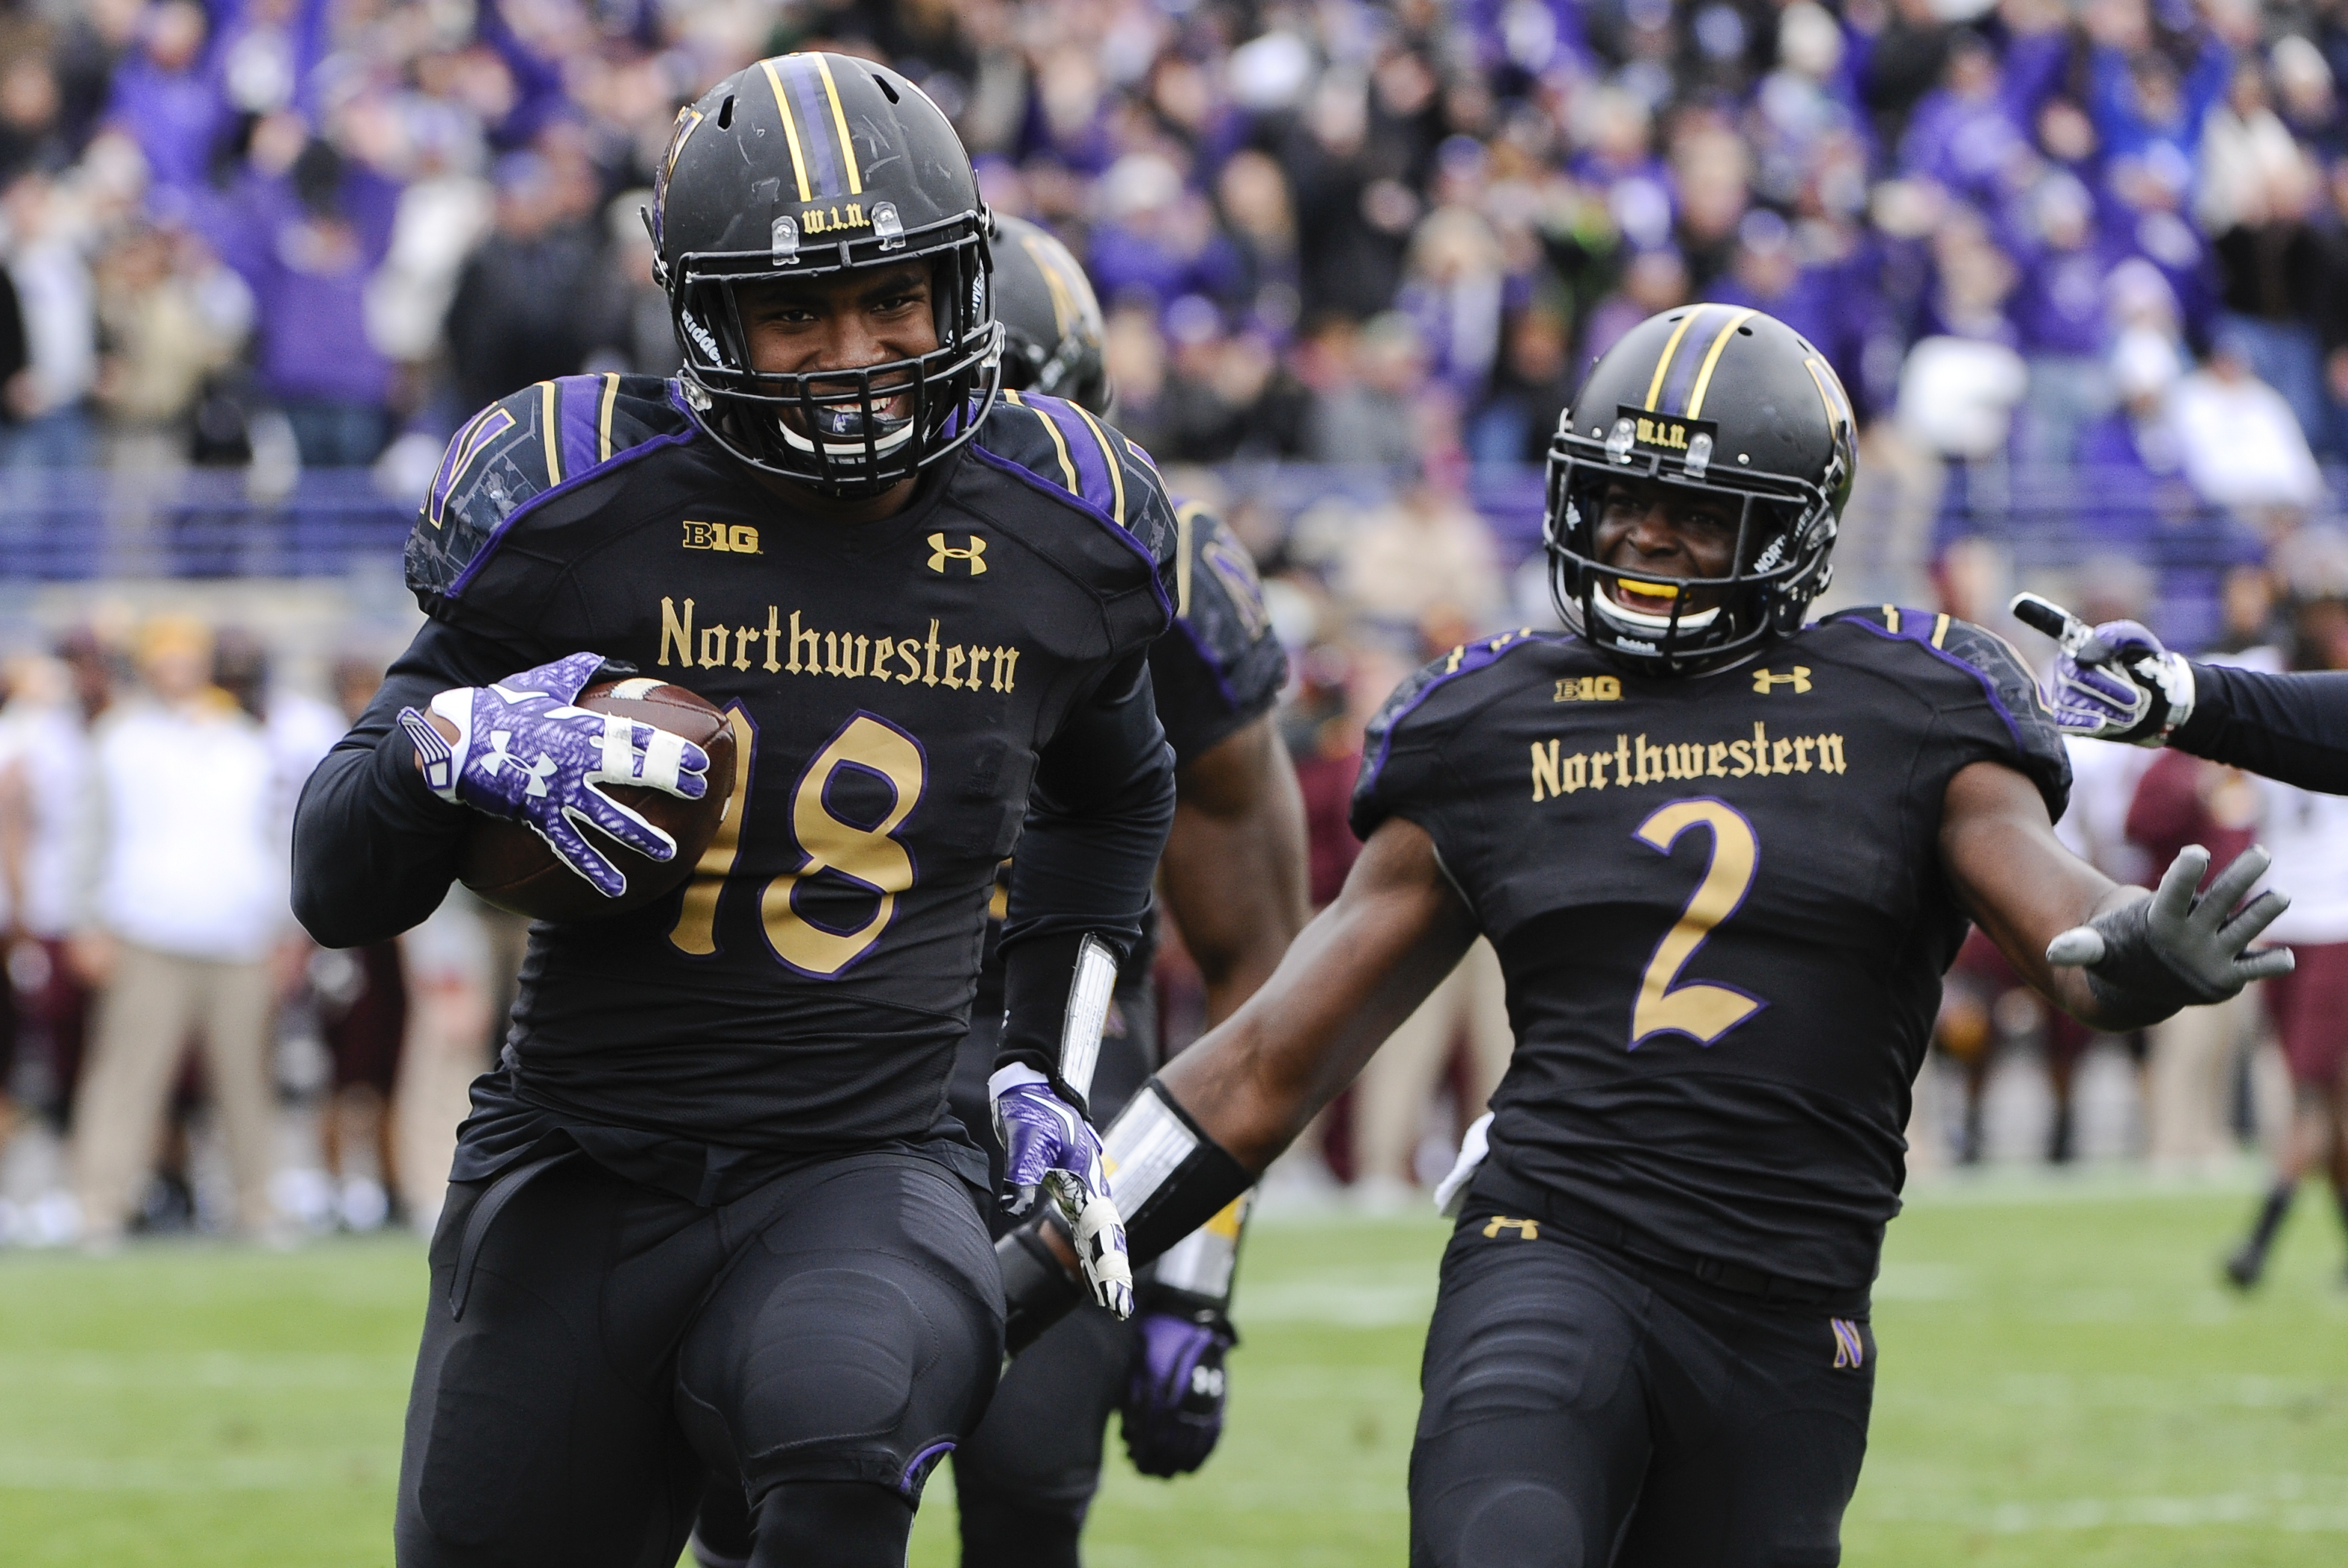 FILE - In this Oct. 3, 2015, file photo, Northwestern linebacker Anthony Walker (18) runs for a touchdown after picking up a Minnesota fumble as teammate safety Traveon Henry (2) watches during an NCAA college football game in Evanston, Ill. The star line